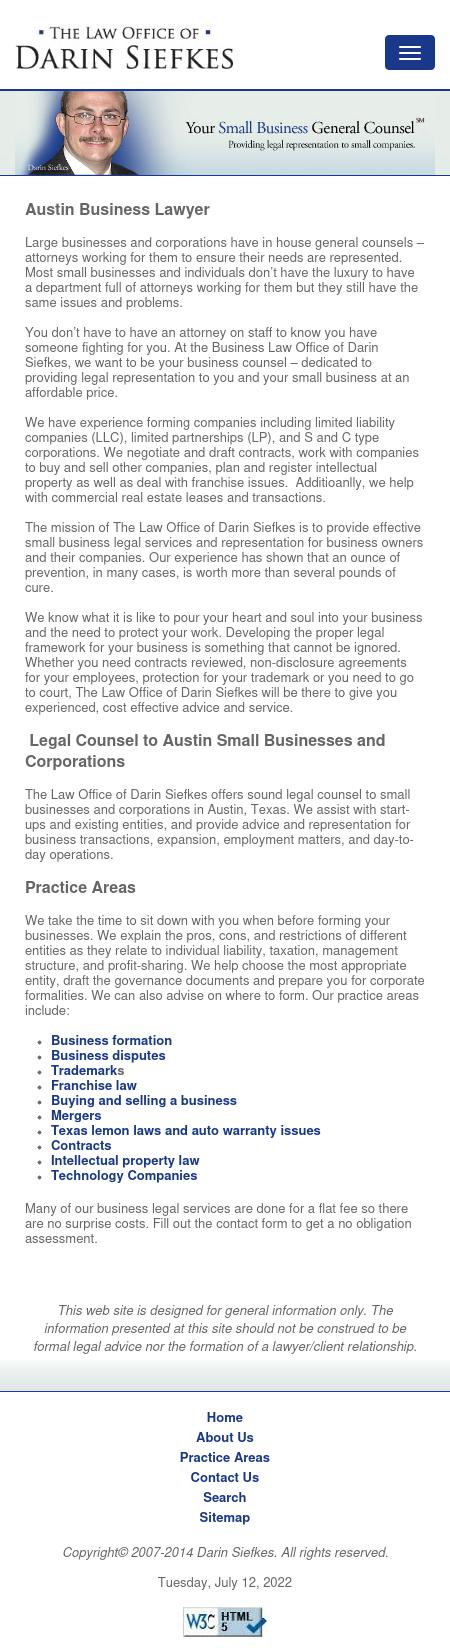 The Law Office of Darin Siefkes, PLLC - Austin TX Lawyers